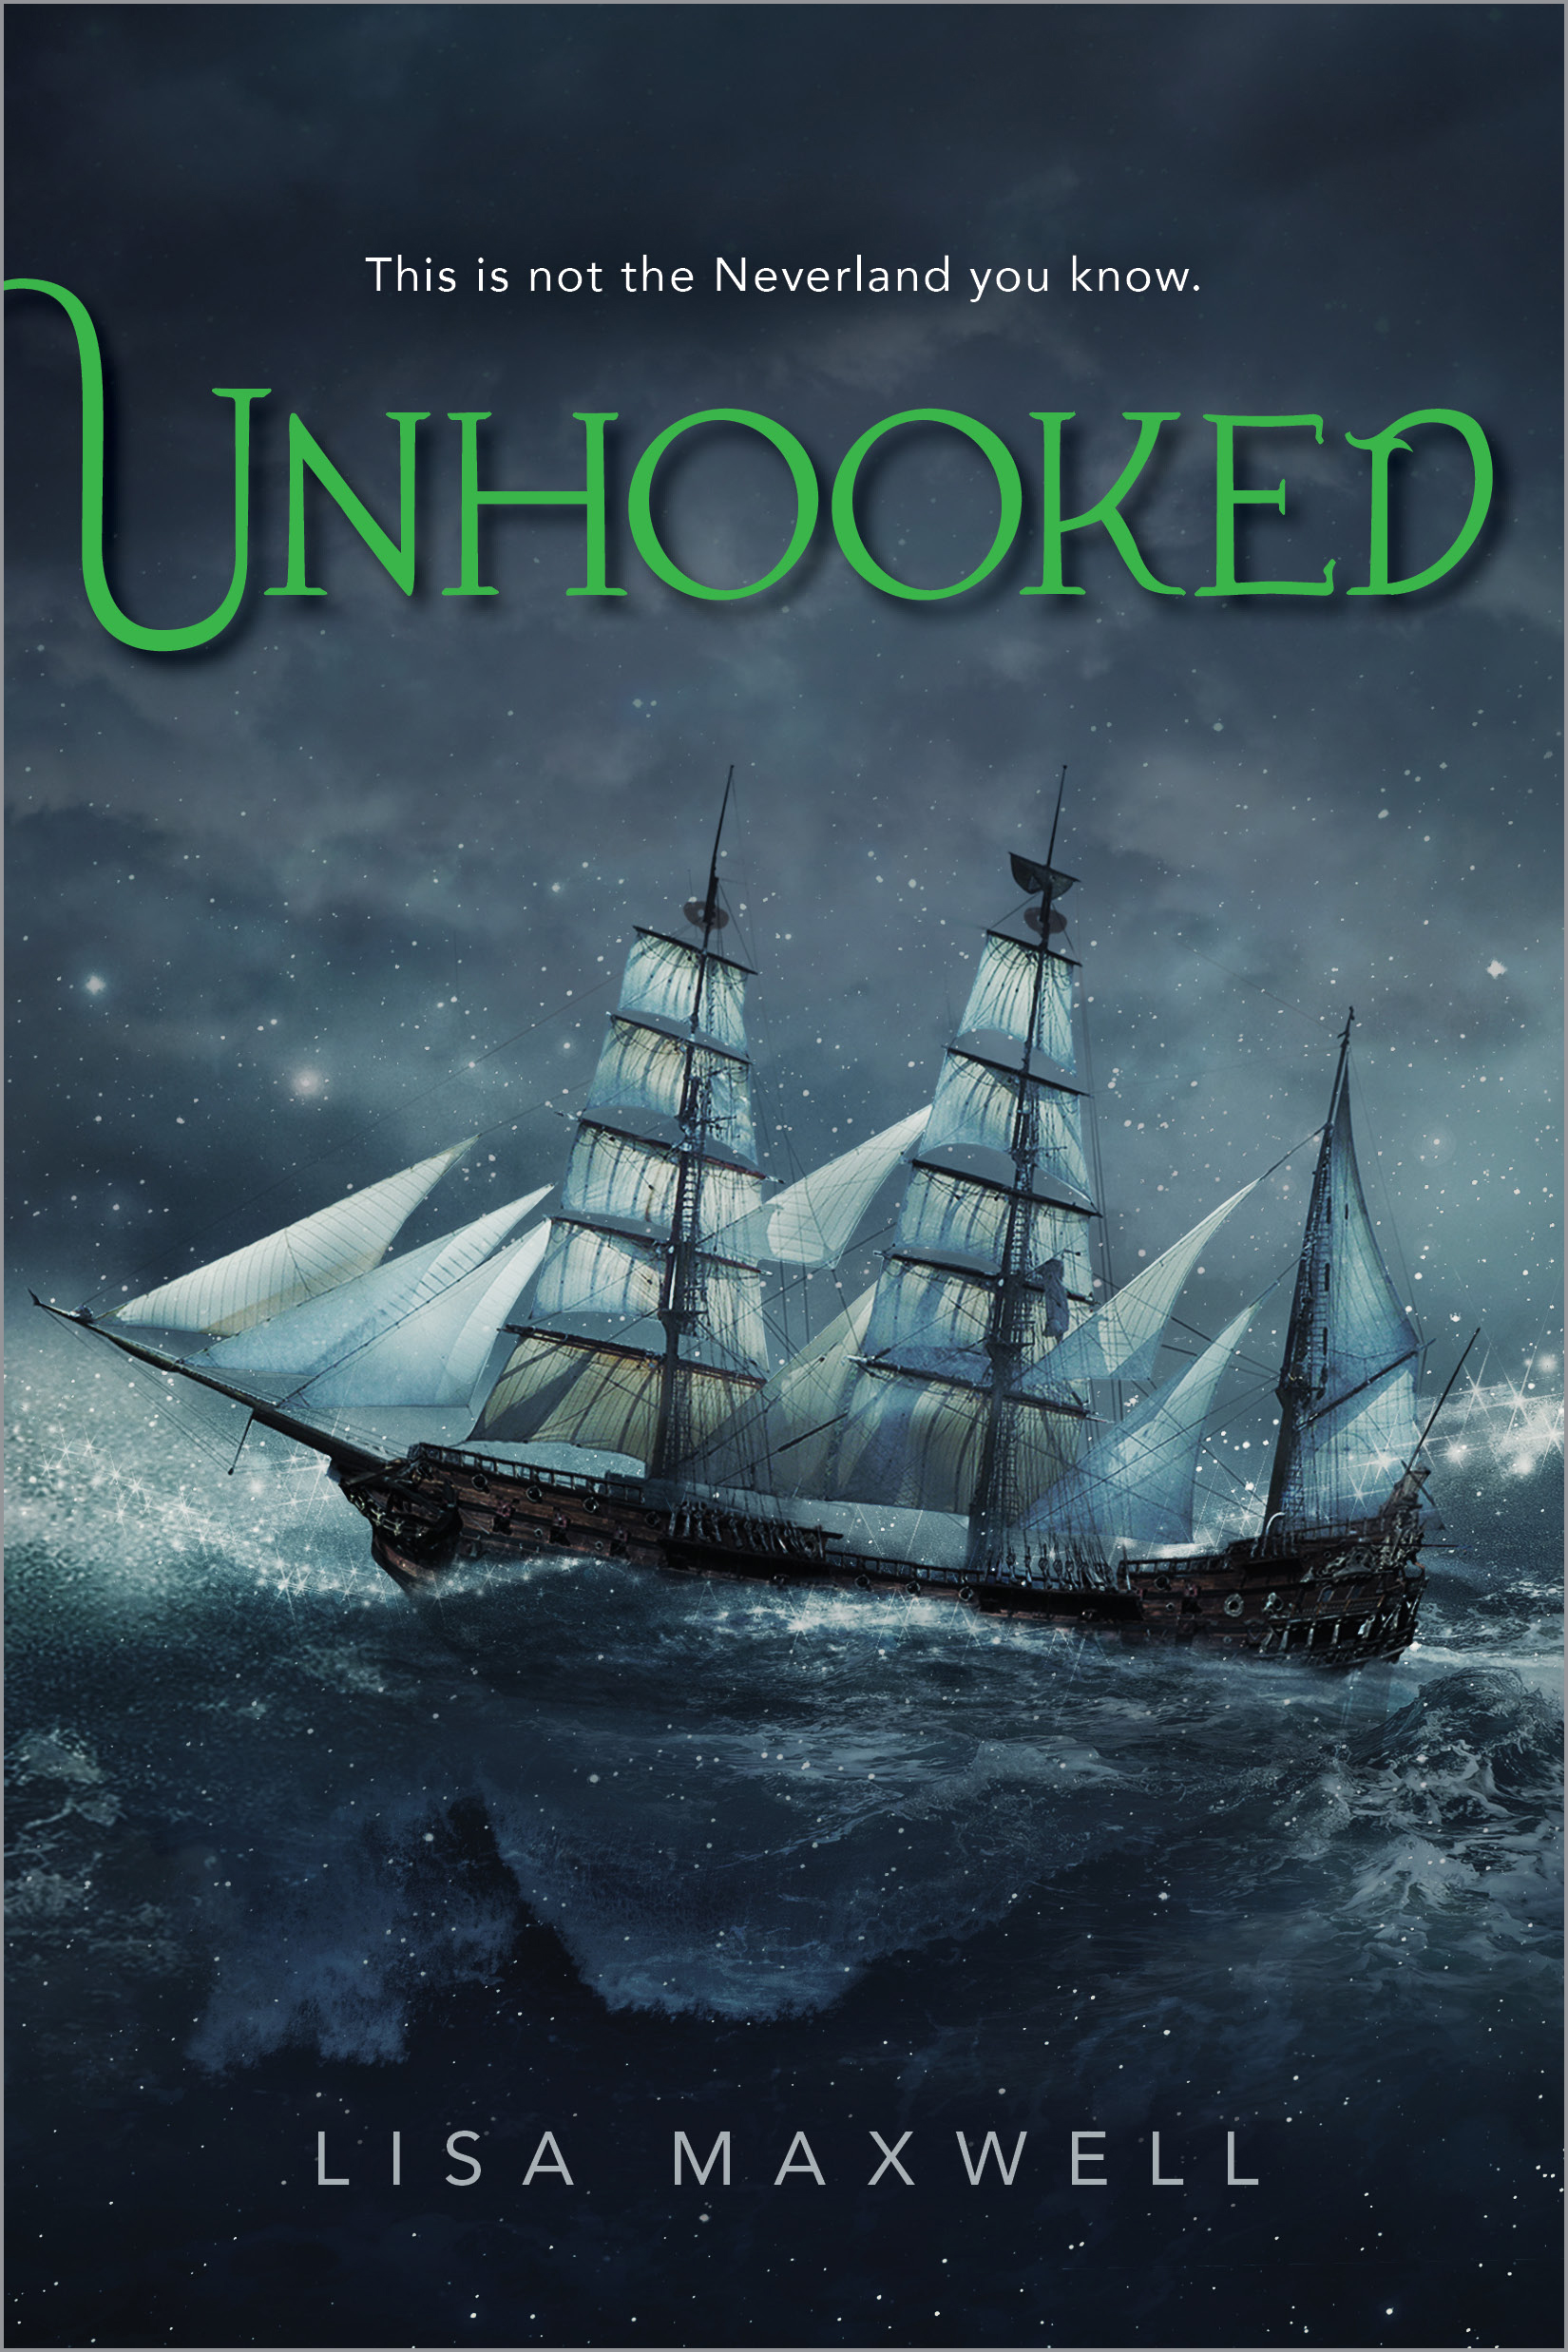 Read the extended excerpt ofUnhooked by Lisa Maxwell!